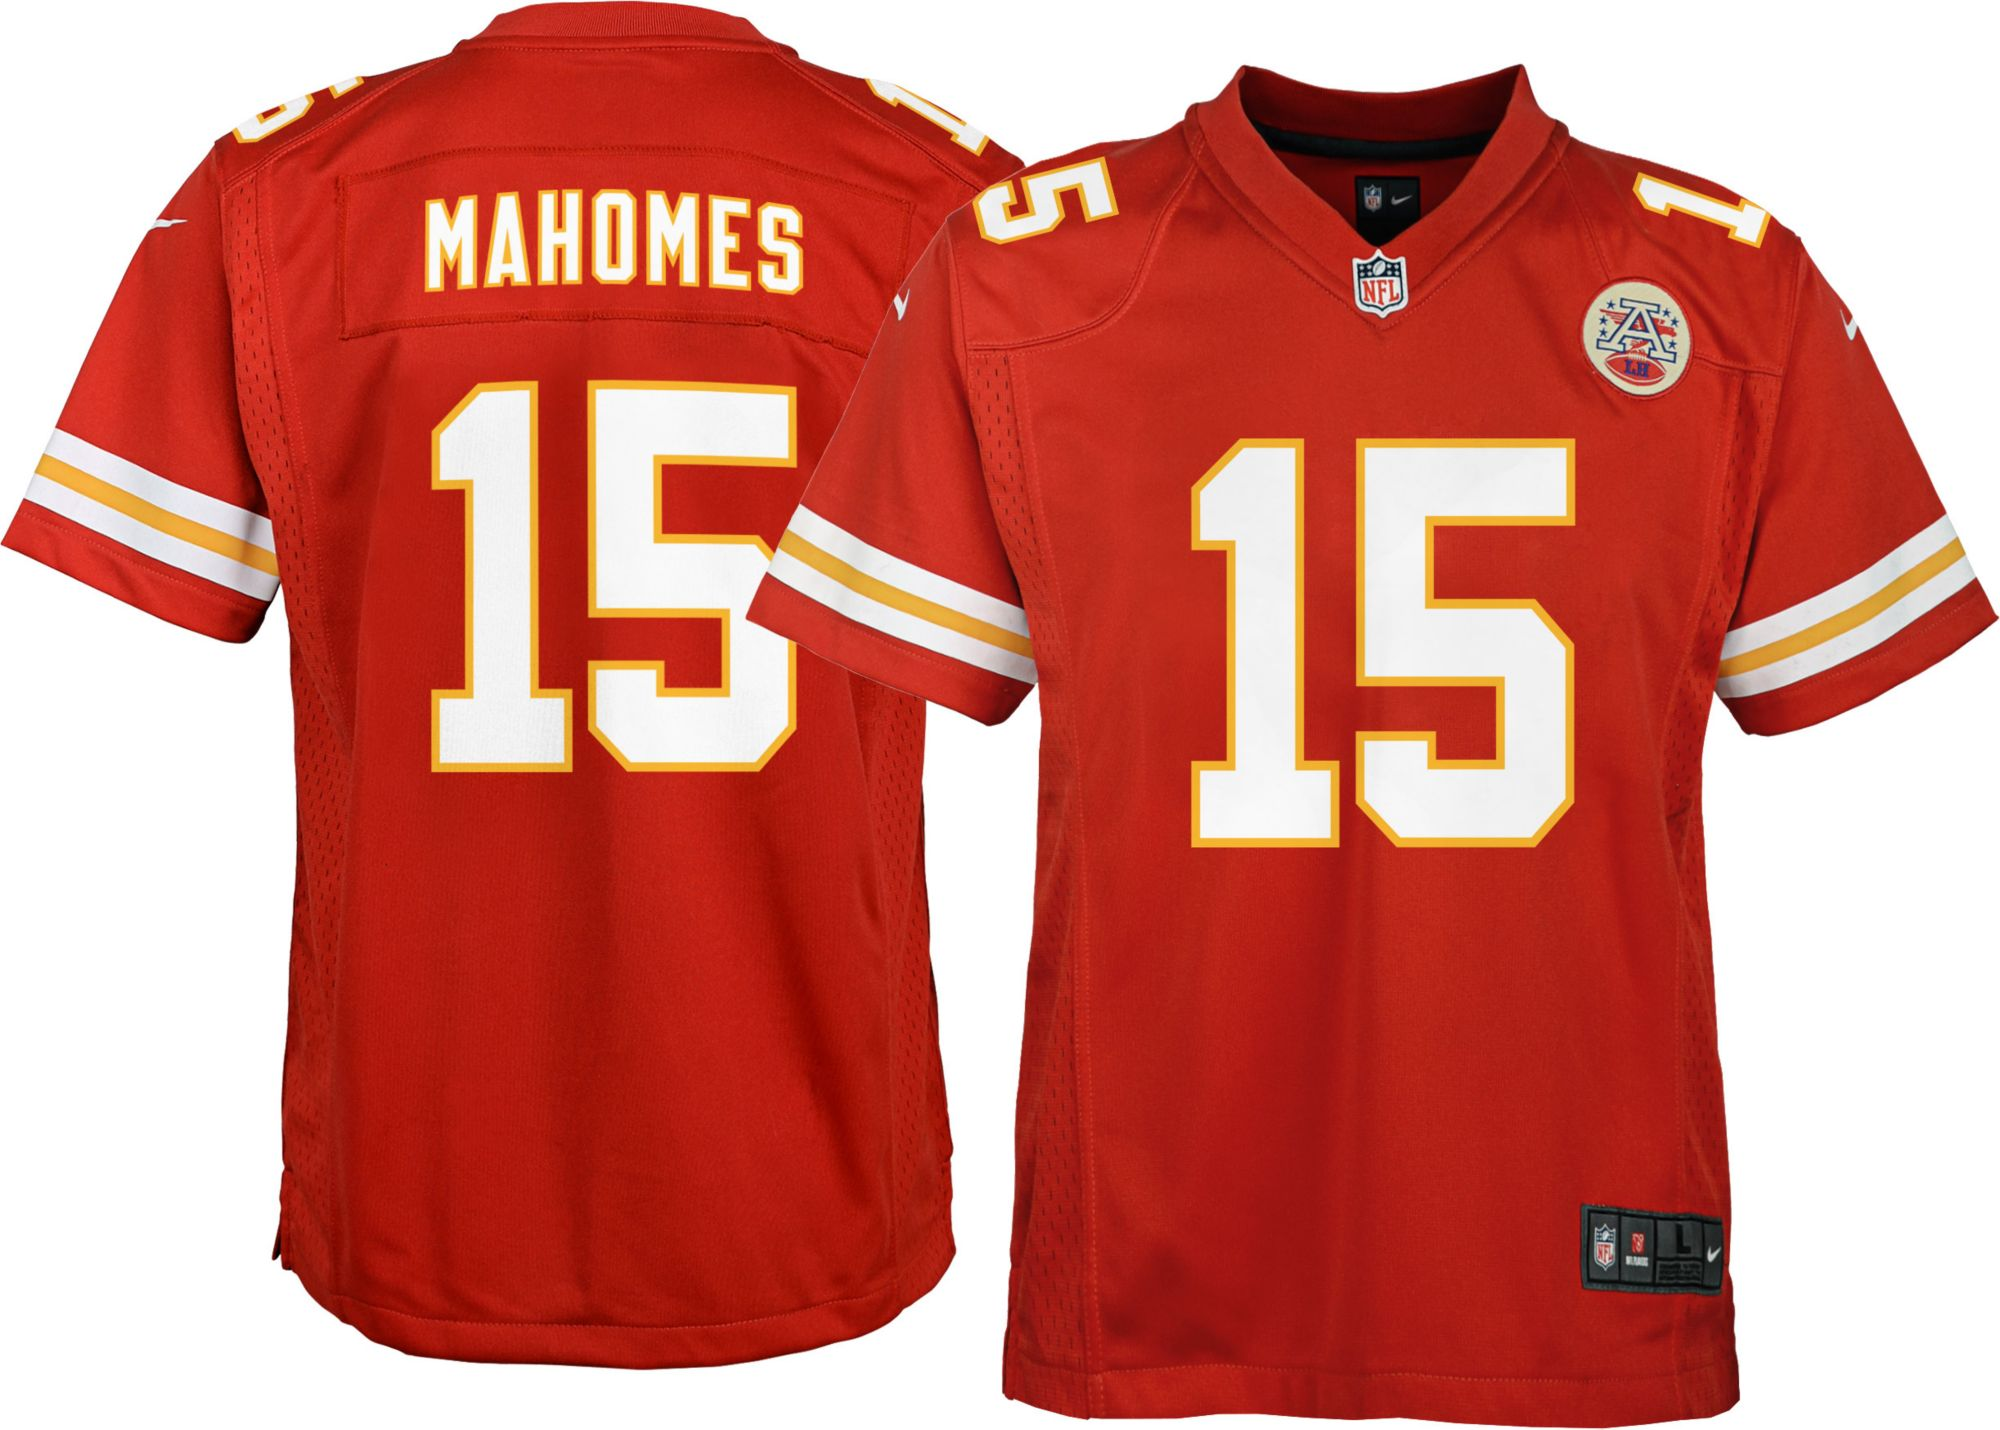 ... vapor untouchable nfl nike9380337 bd738 3519a  where to buy nike youth  home game jersey kansas city chiefs patrick mahomes 15 f28a1 aaea5 9273563cb